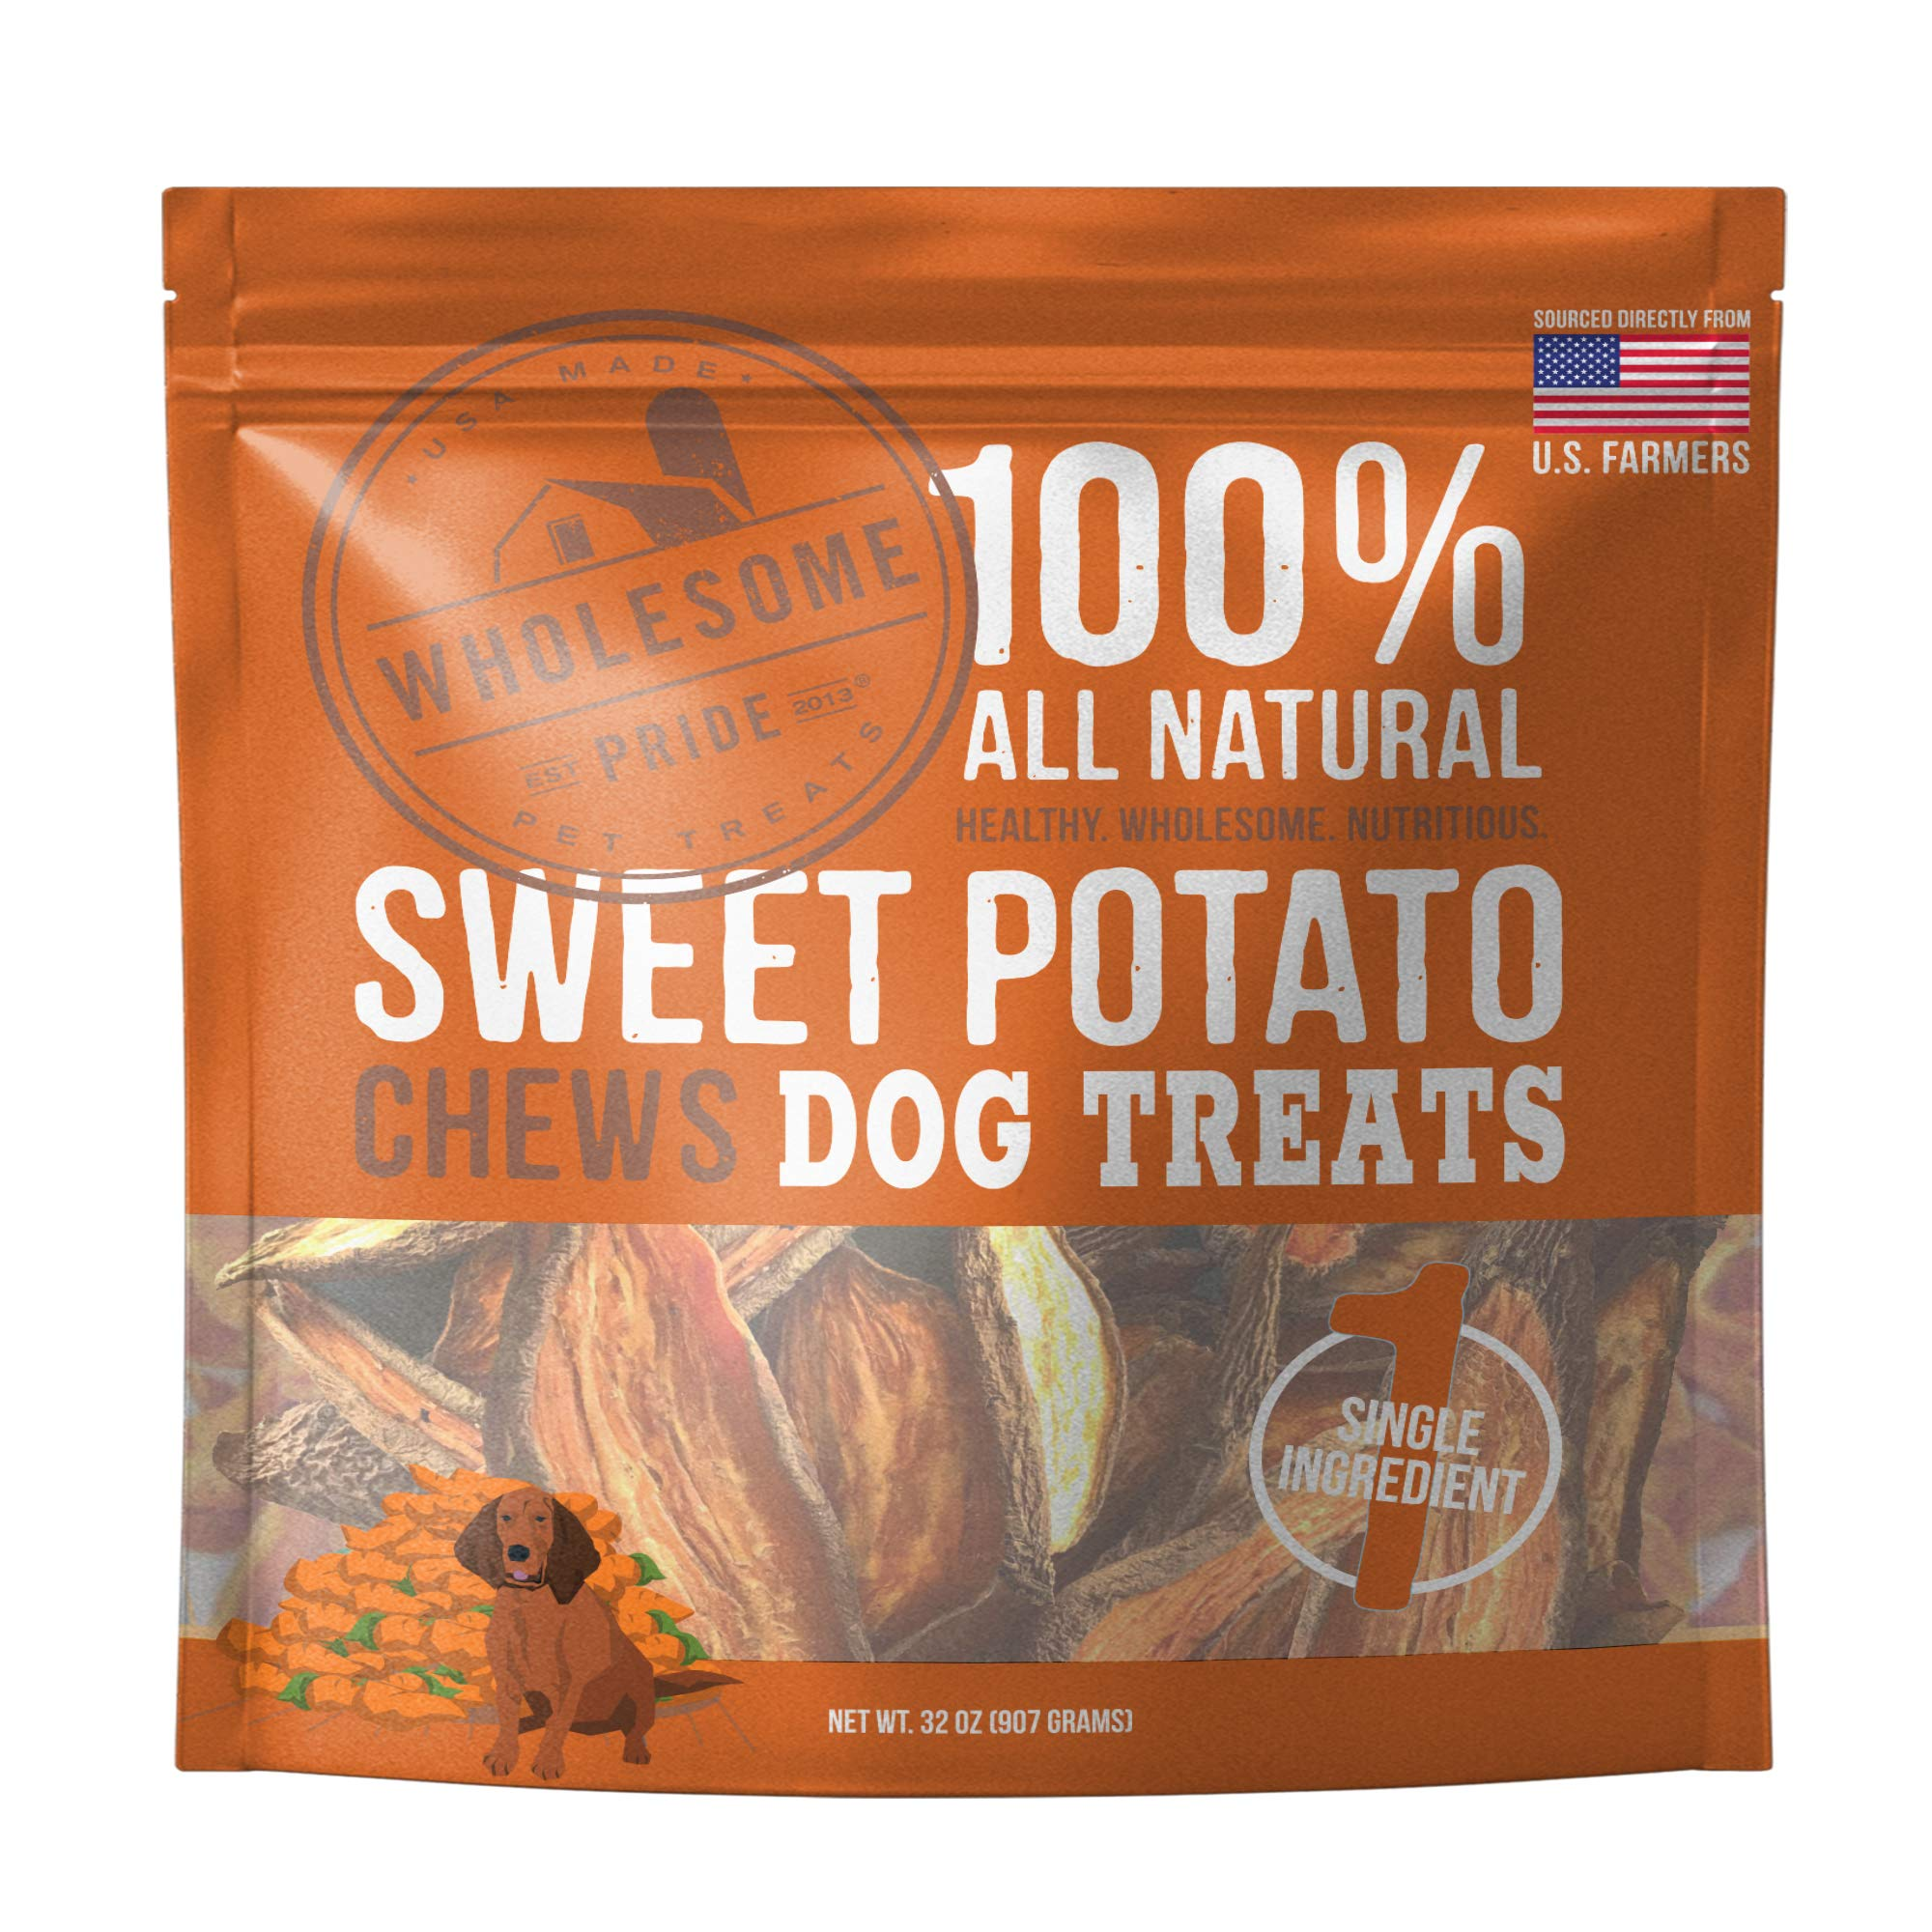 Wholesome Pride Sweet Potato Chews Dog Treats, 32 oz - All Natural Healthy - Vegan, Gluten and Grain-Free Dog Snacks - Made in USA by Wholesome Pride